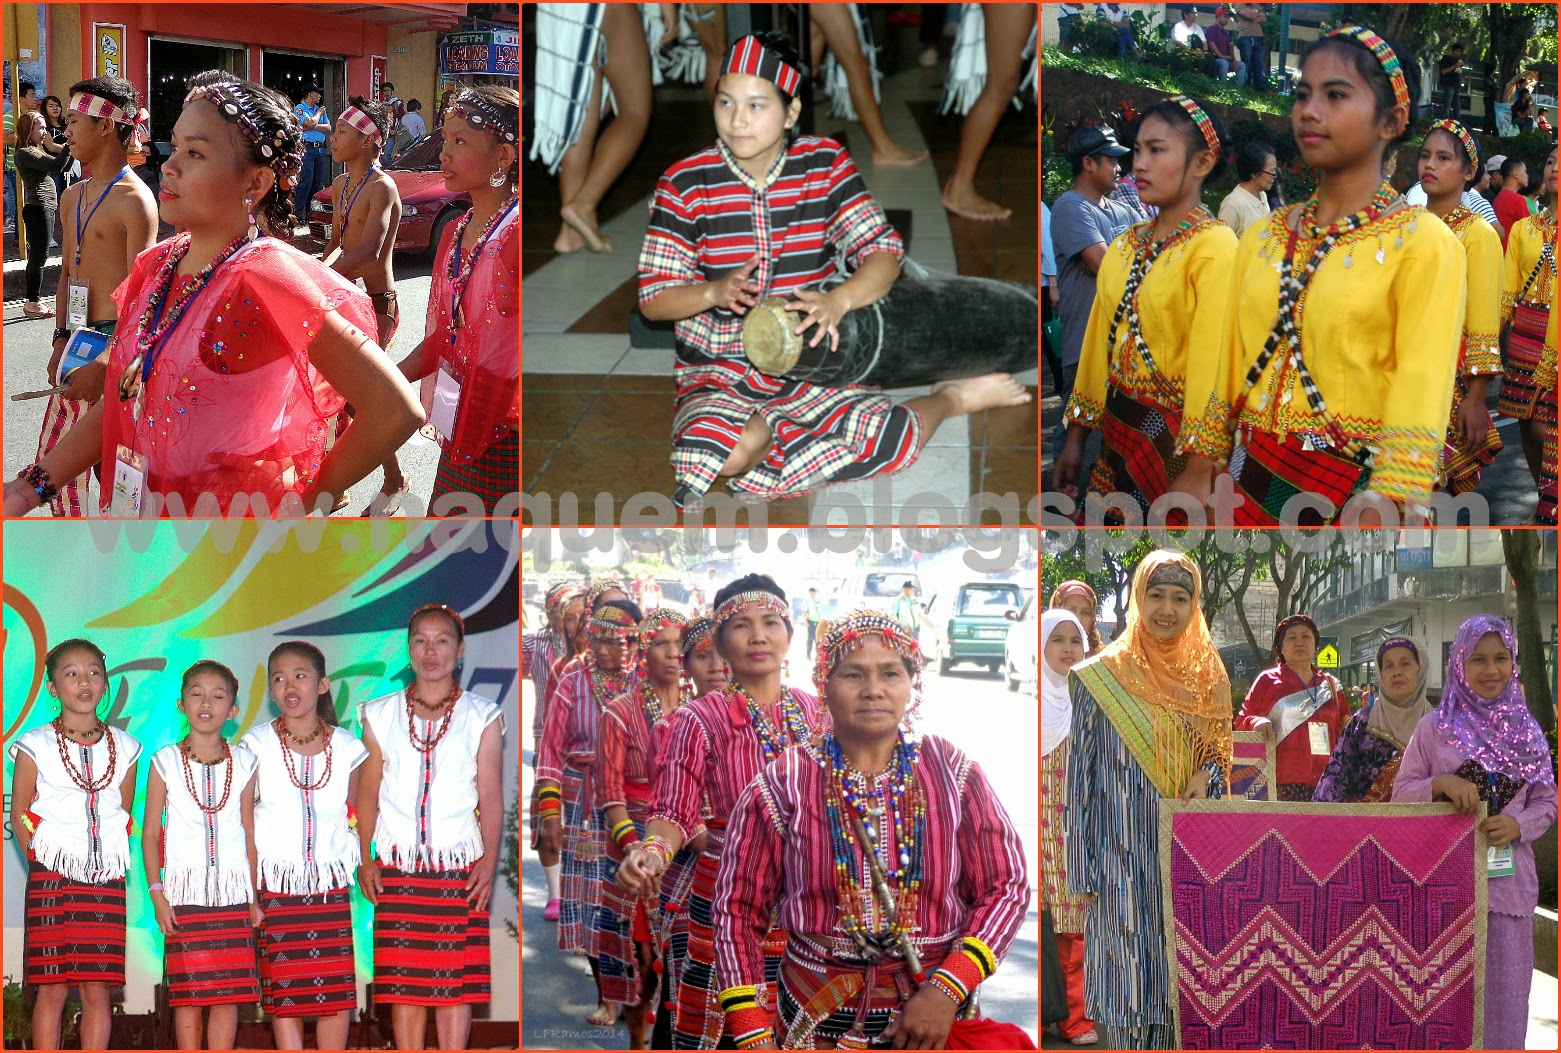 cultural analysis of tausug Cultural domain analysis revealed the richness of perspectives about muslims in  the  daniels' thesis contributes recent information about tausug culture .